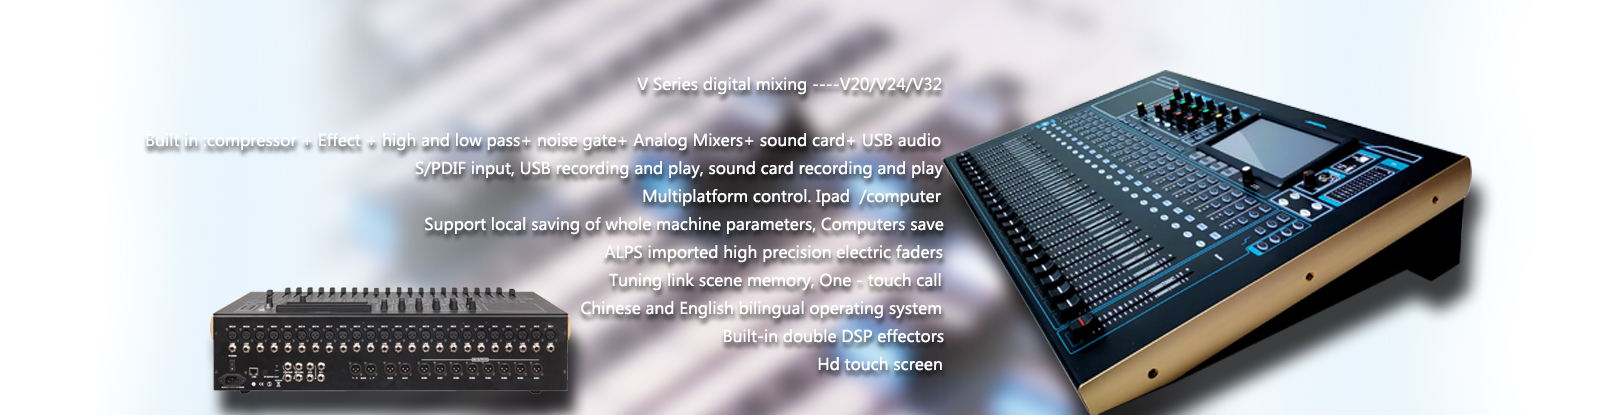 V Series digital mixing